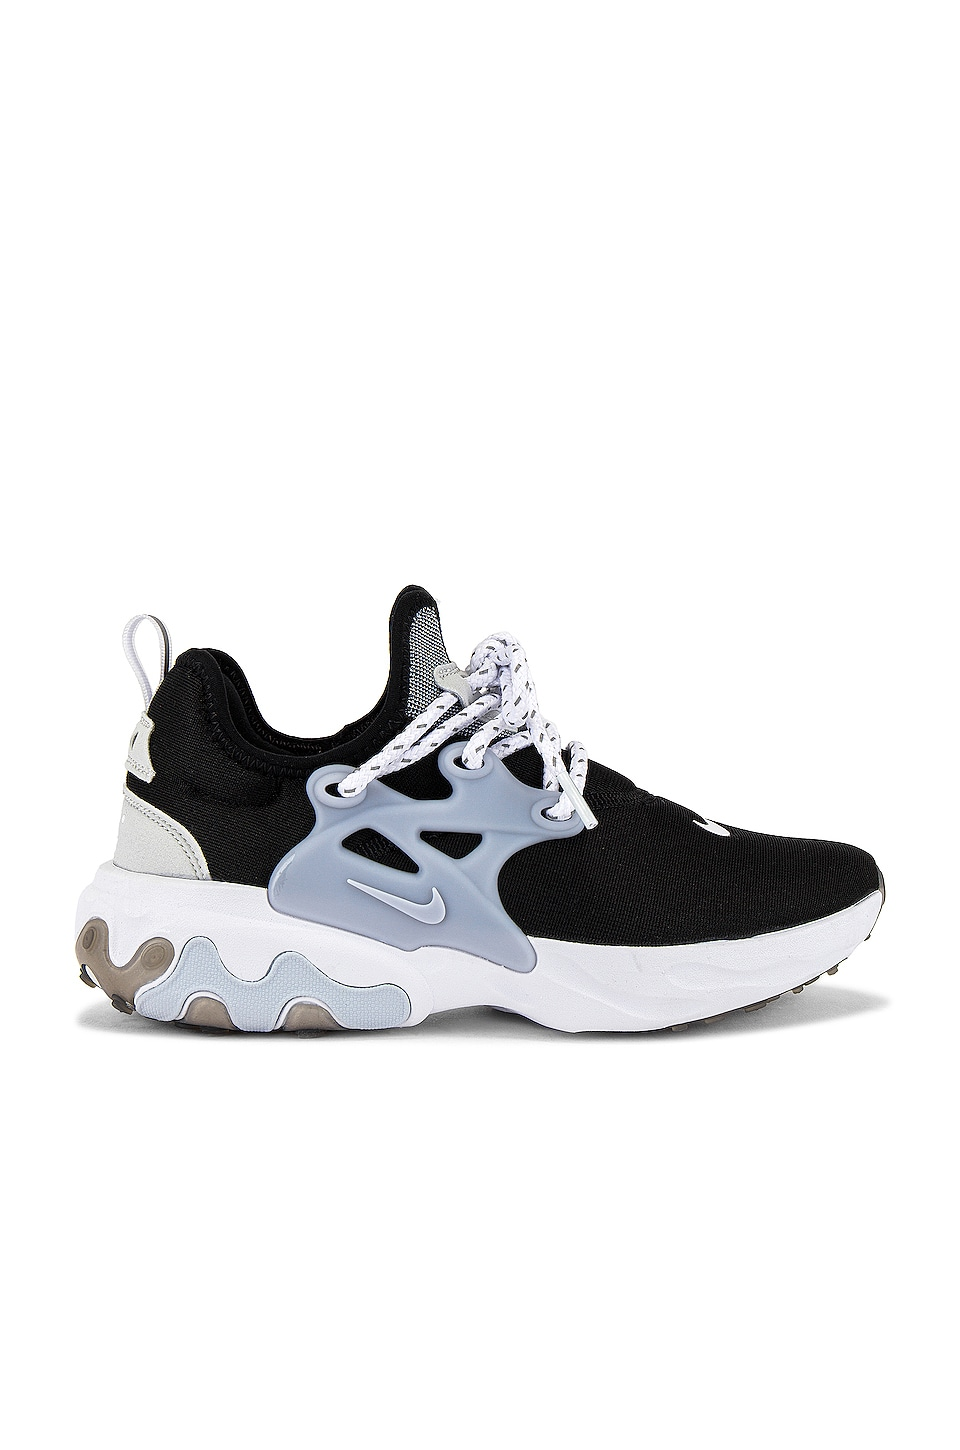 Familiar R Diversidad  Nike React Presto Sneaker in Black, Sky Grey & Photon Dust | REVOLVE